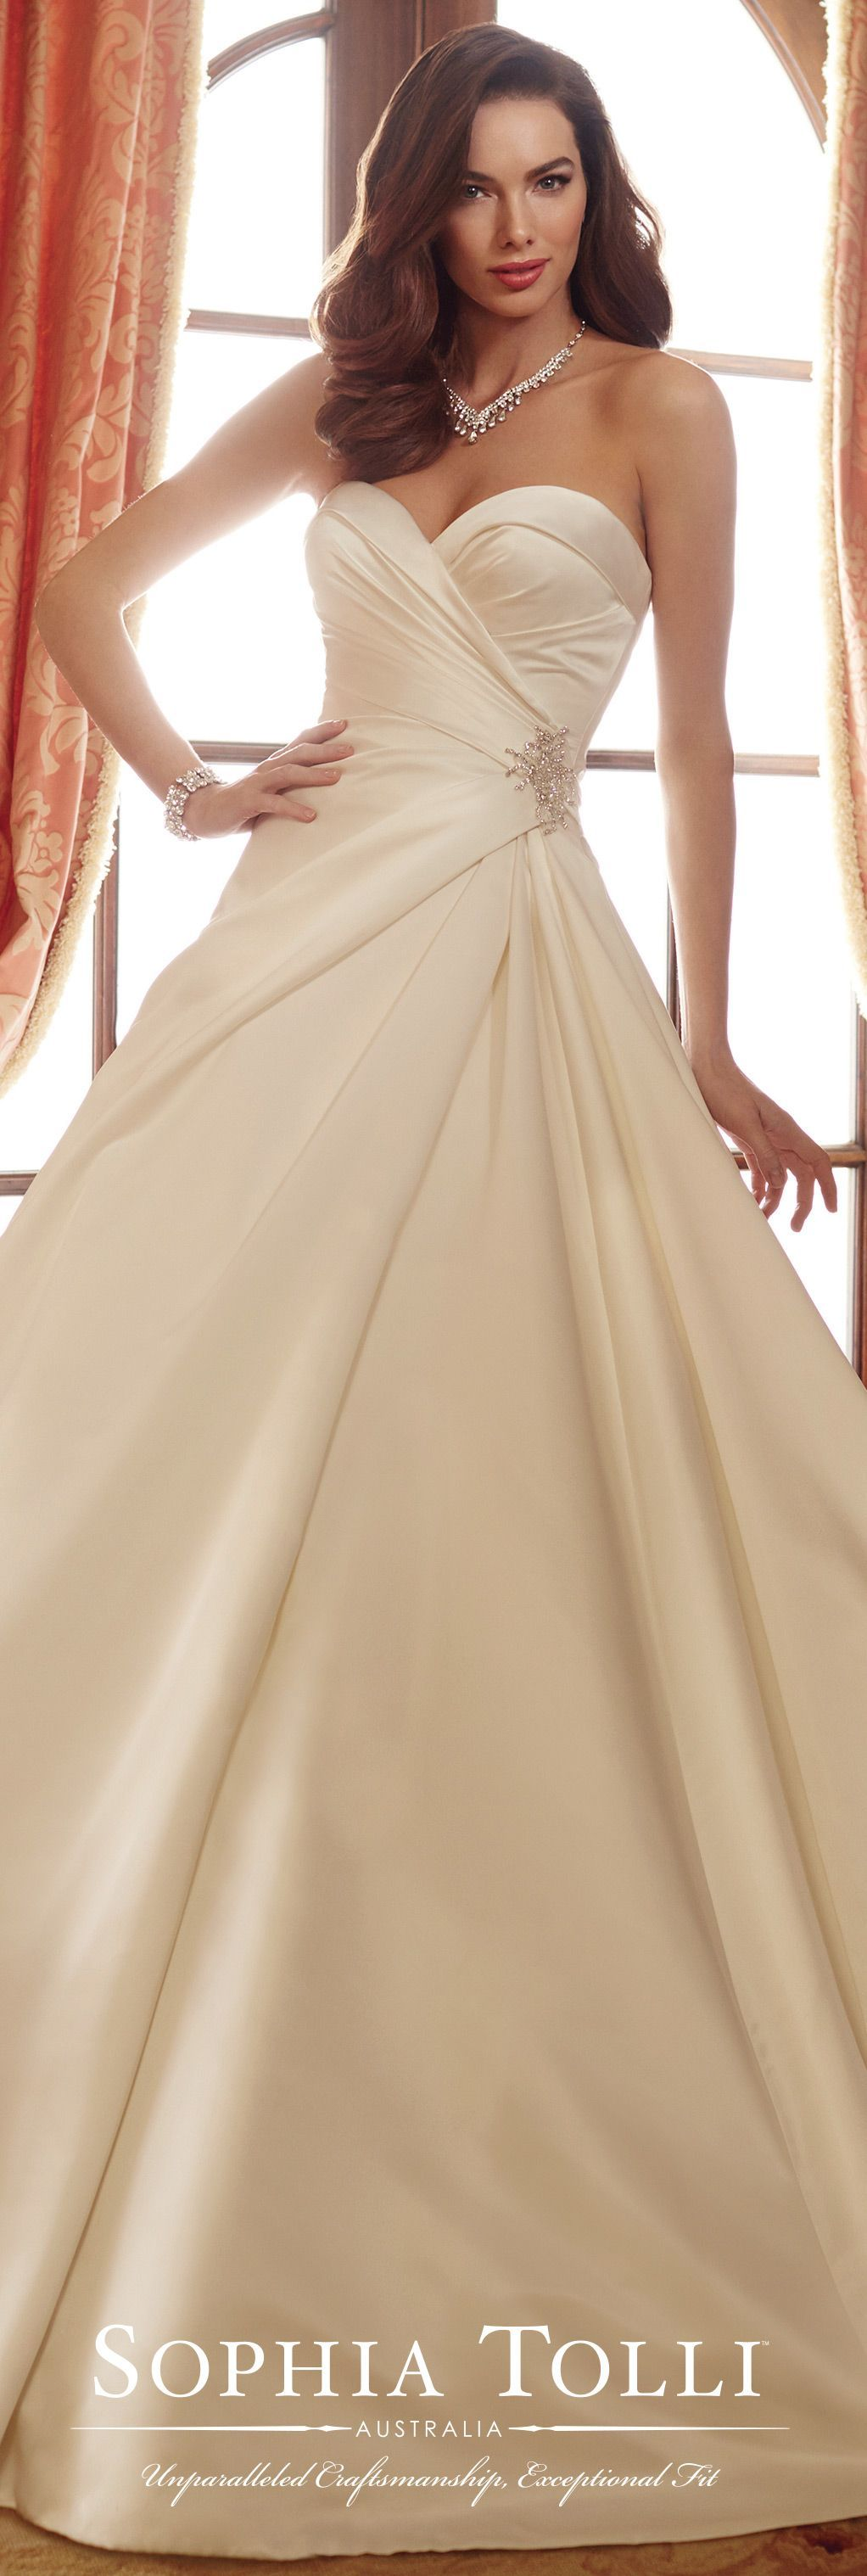 Sophia tolli spring wedding gown collection style no y